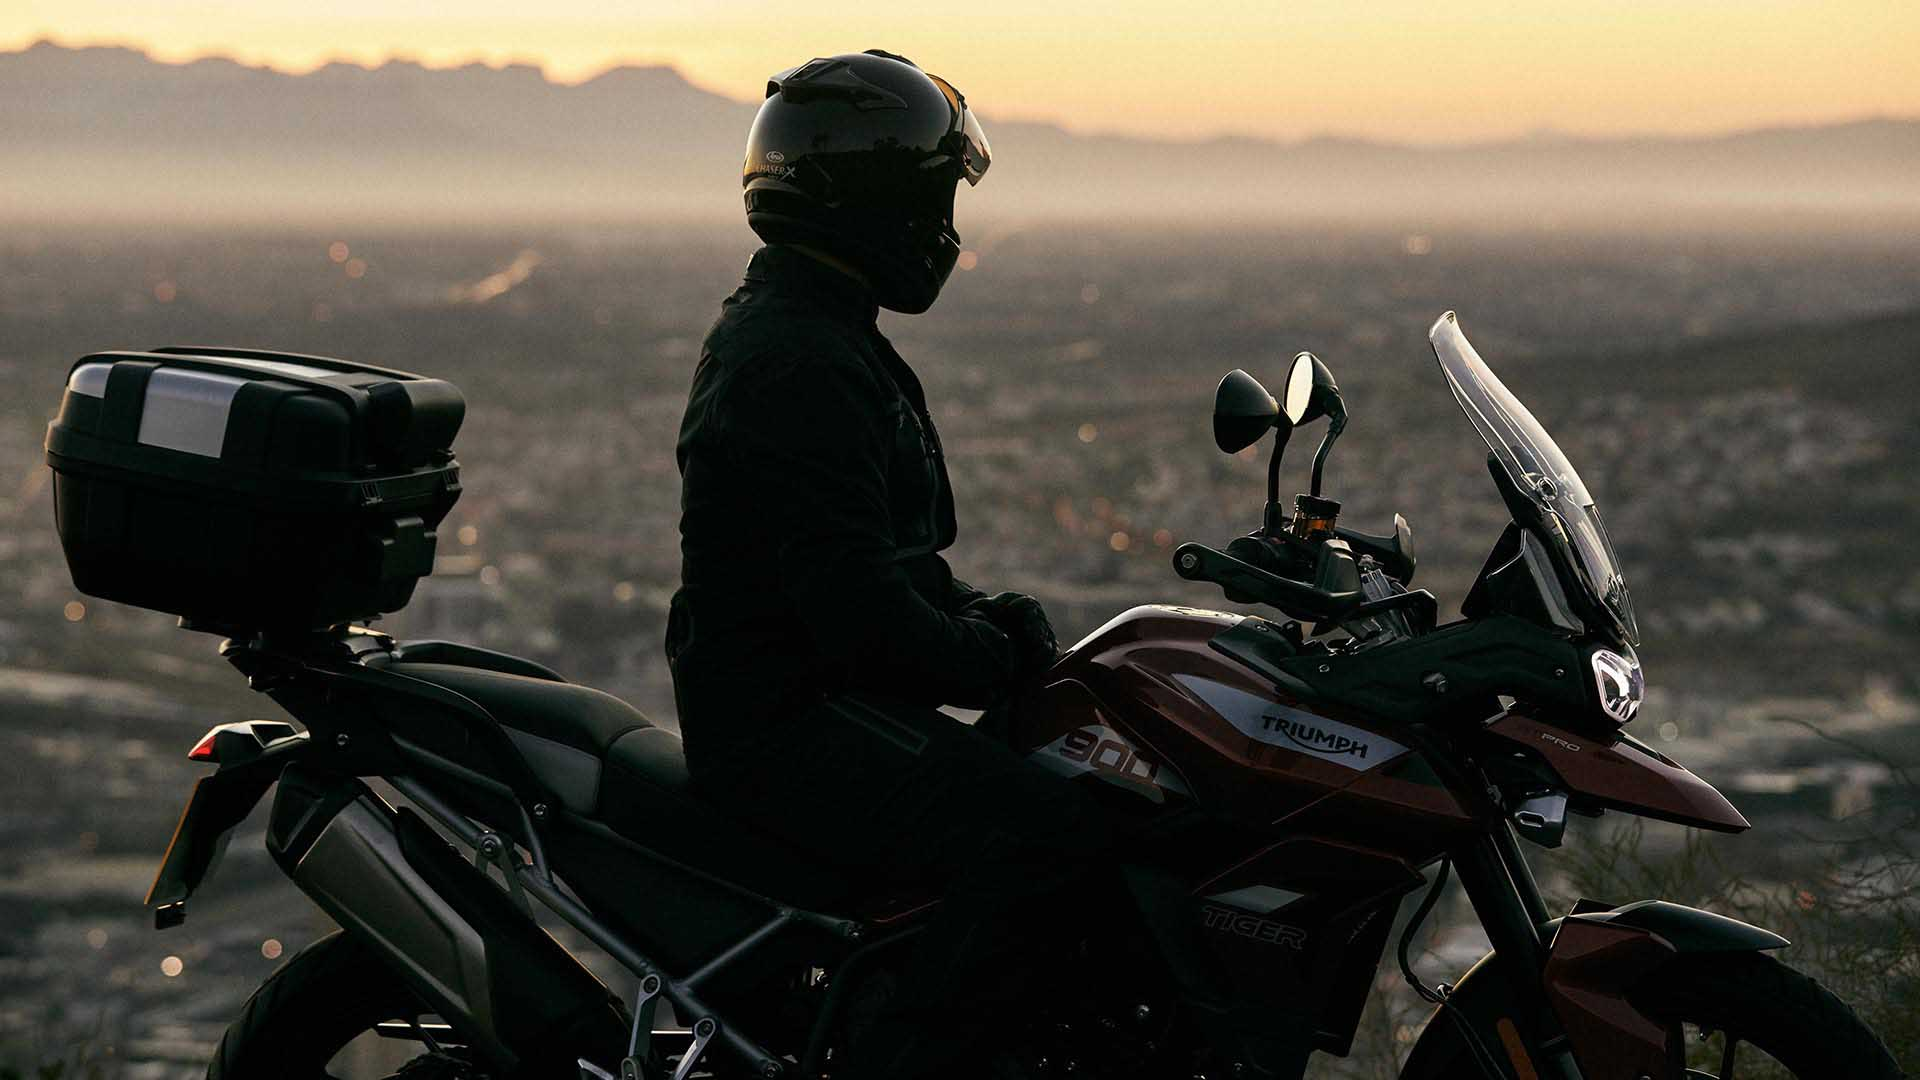 South Africa landscape shot with the Triumph Tiger 900 GT Pro